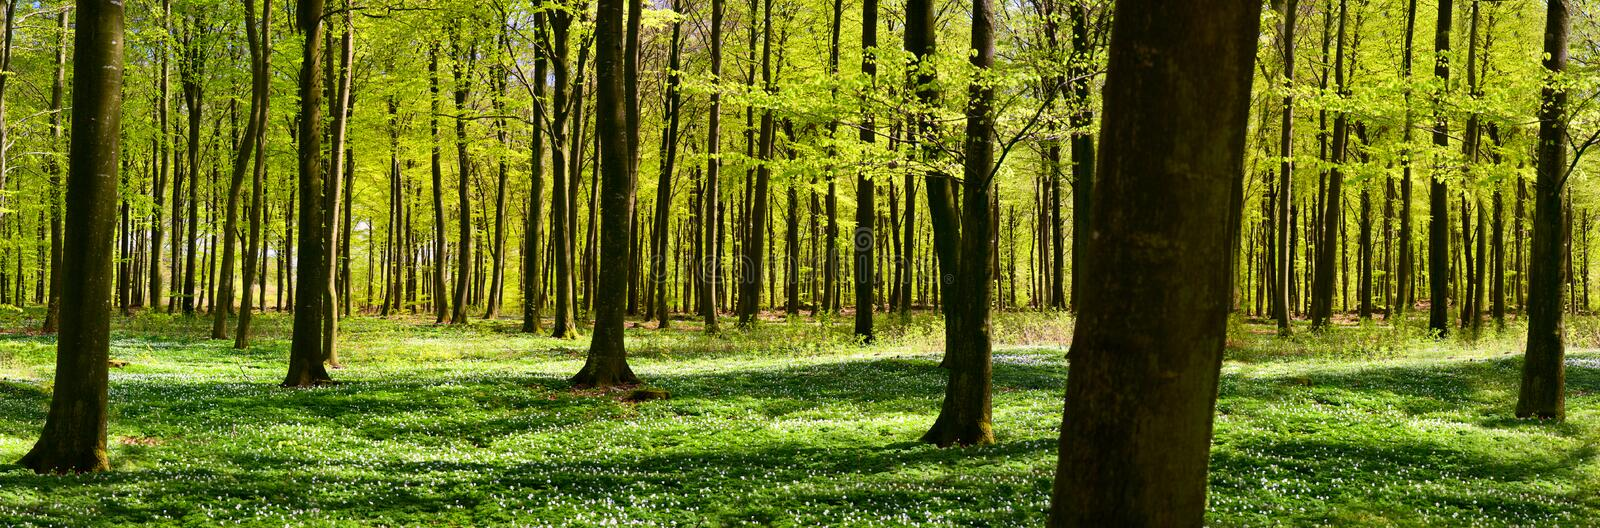 Forêt verte au printemps photographie stock